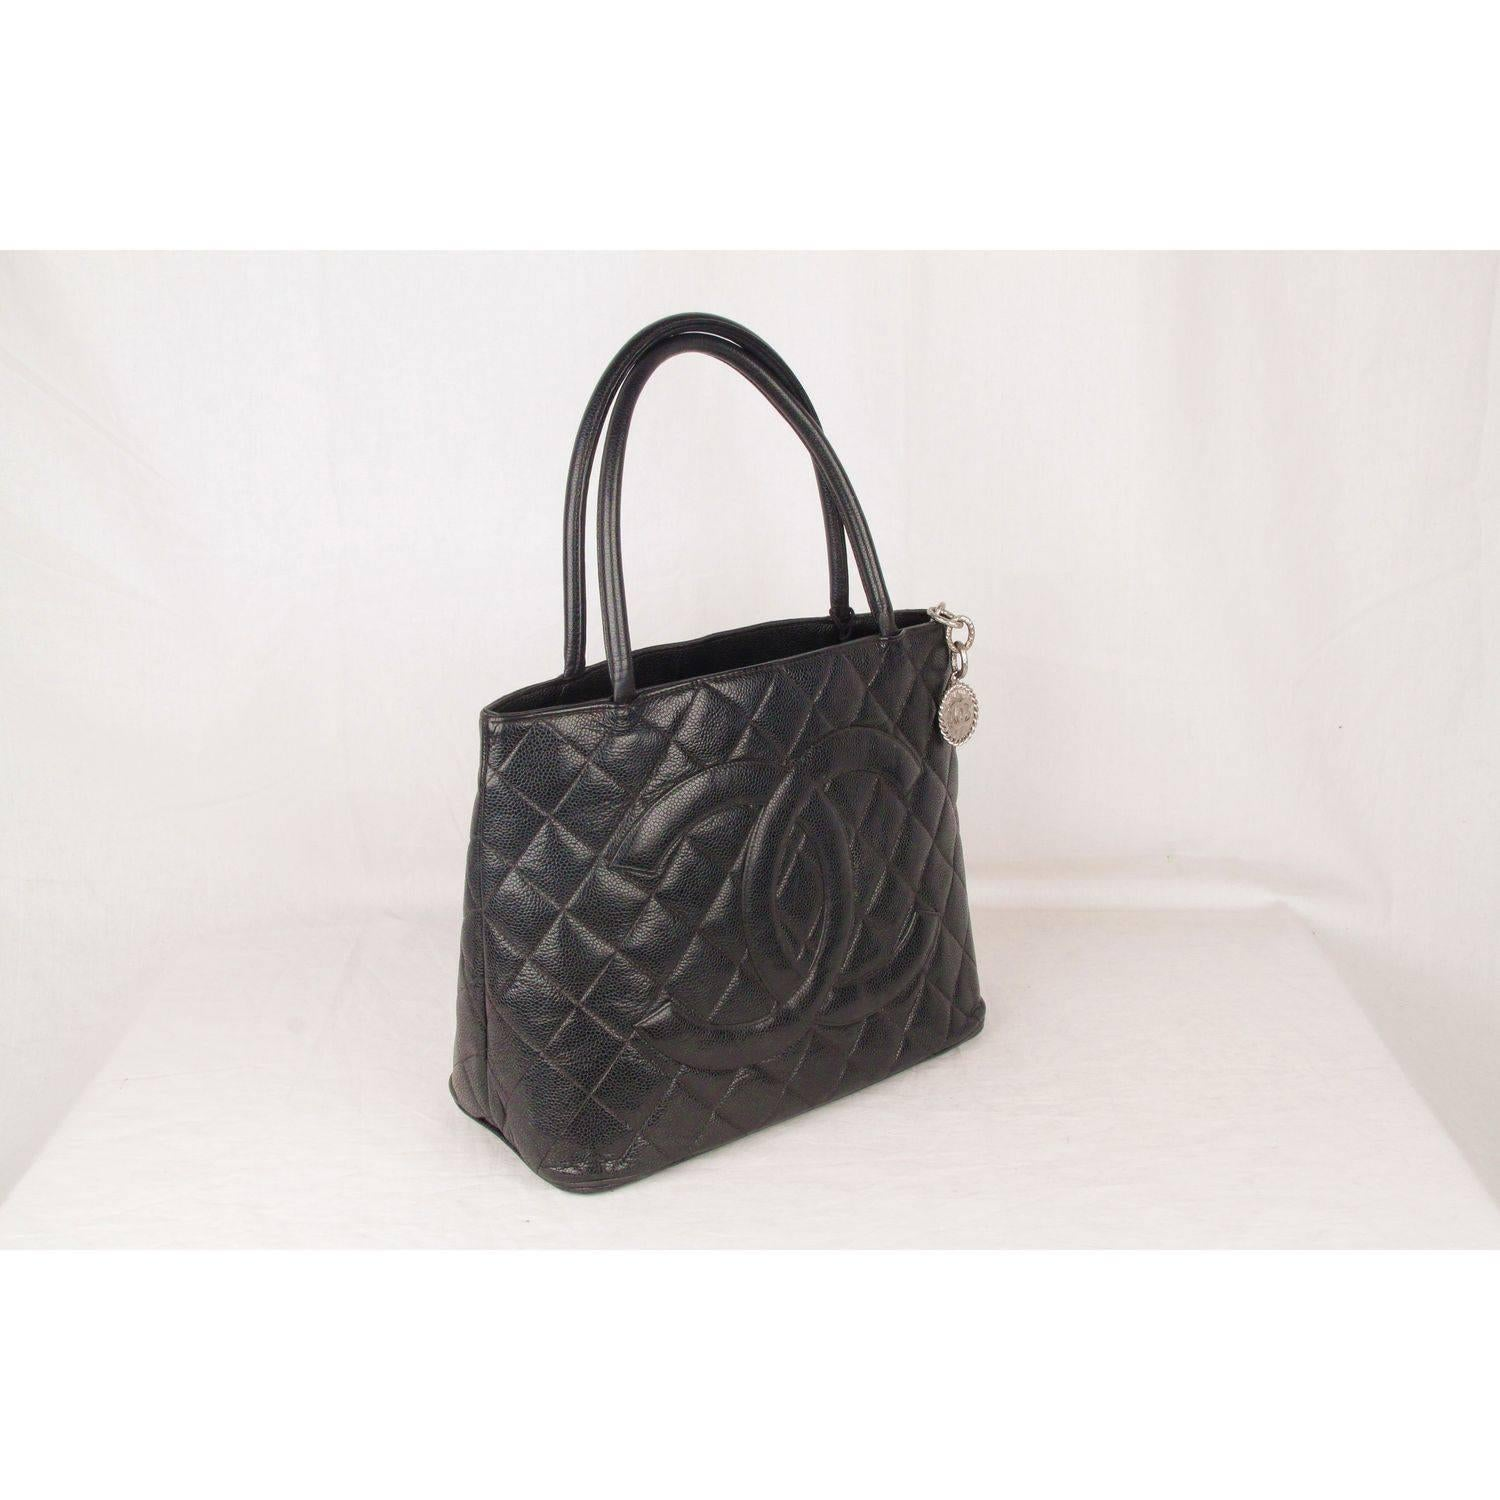 Chanel Black Quilted Caviar Leather Medallion Tote Bag For Sale At